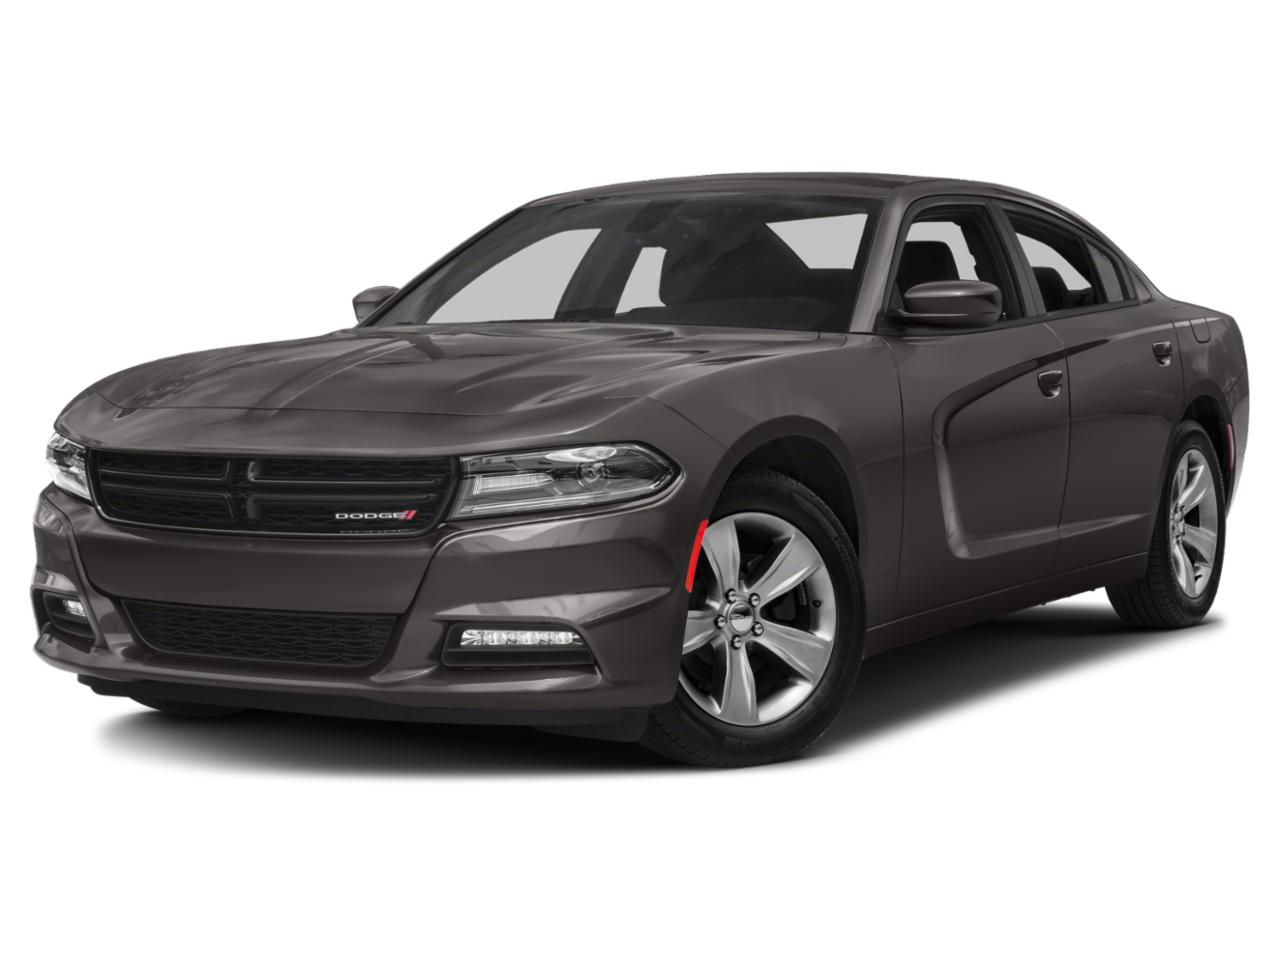 2018 Dodge Charger Vehicle Photo in Killeen, TX 76541